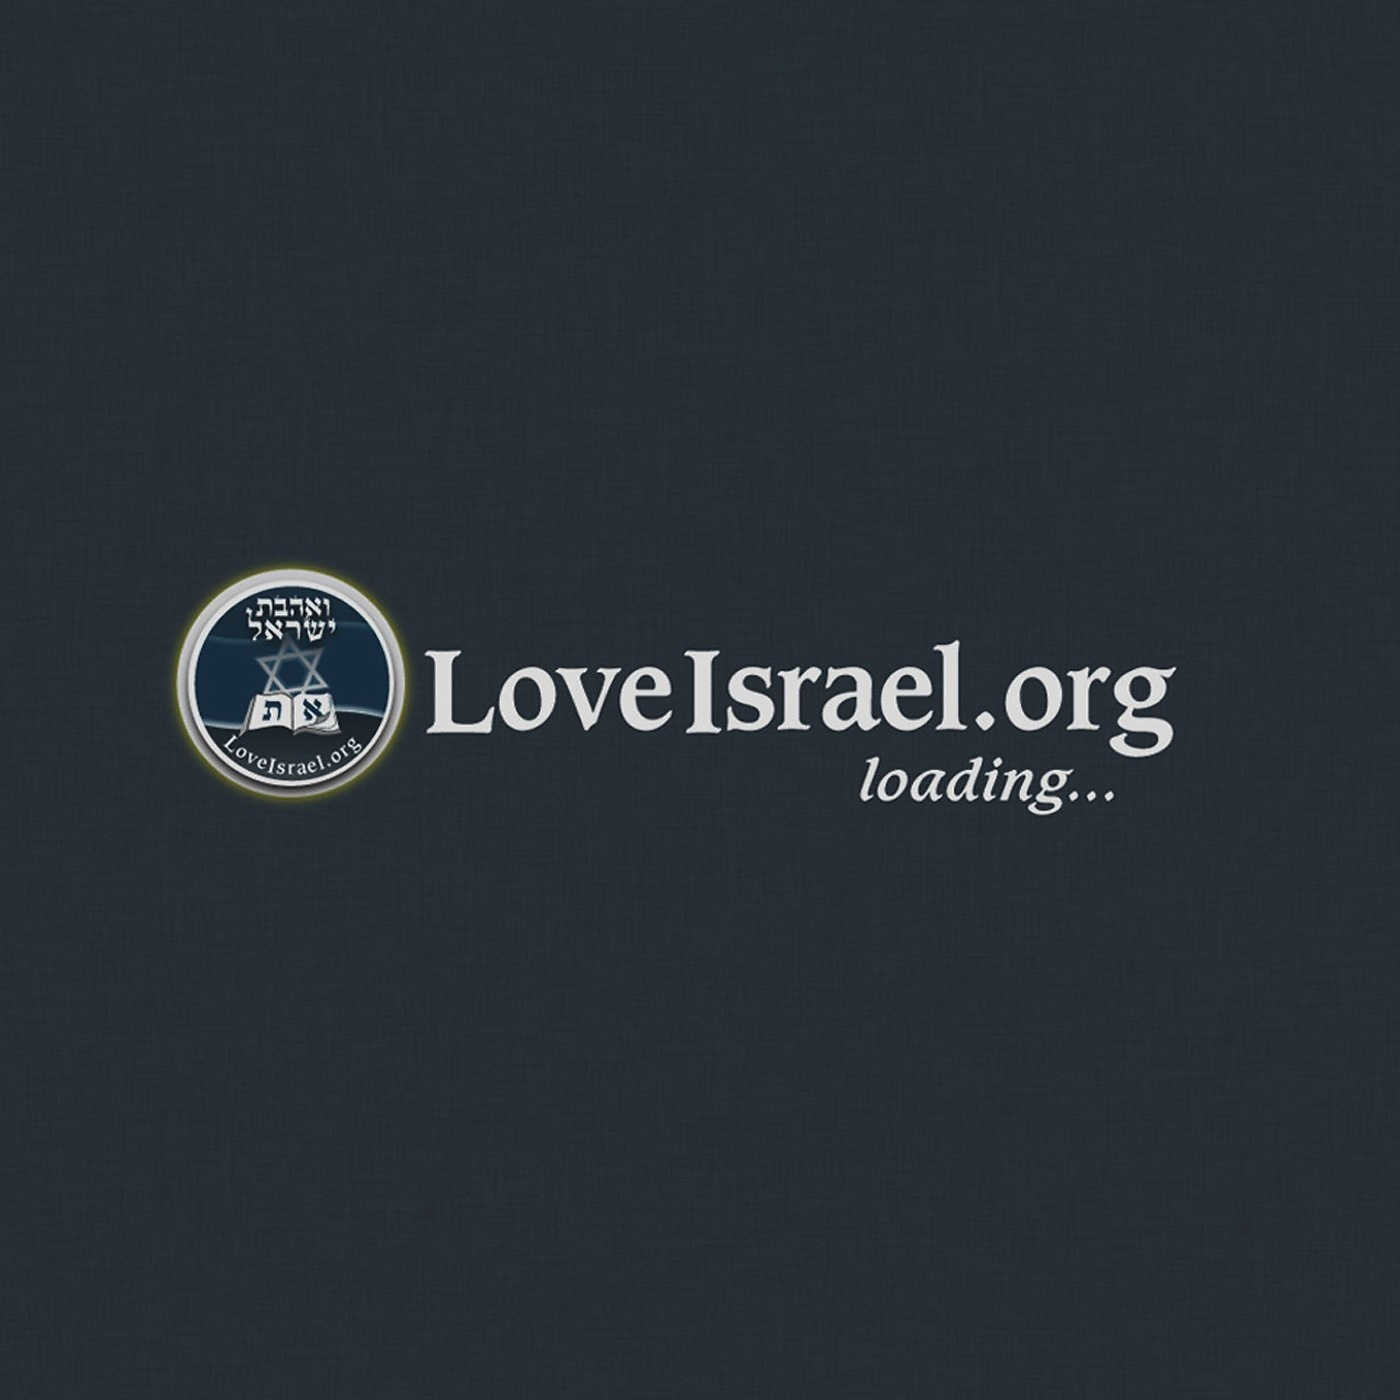 LoveIsrael.org (audio)